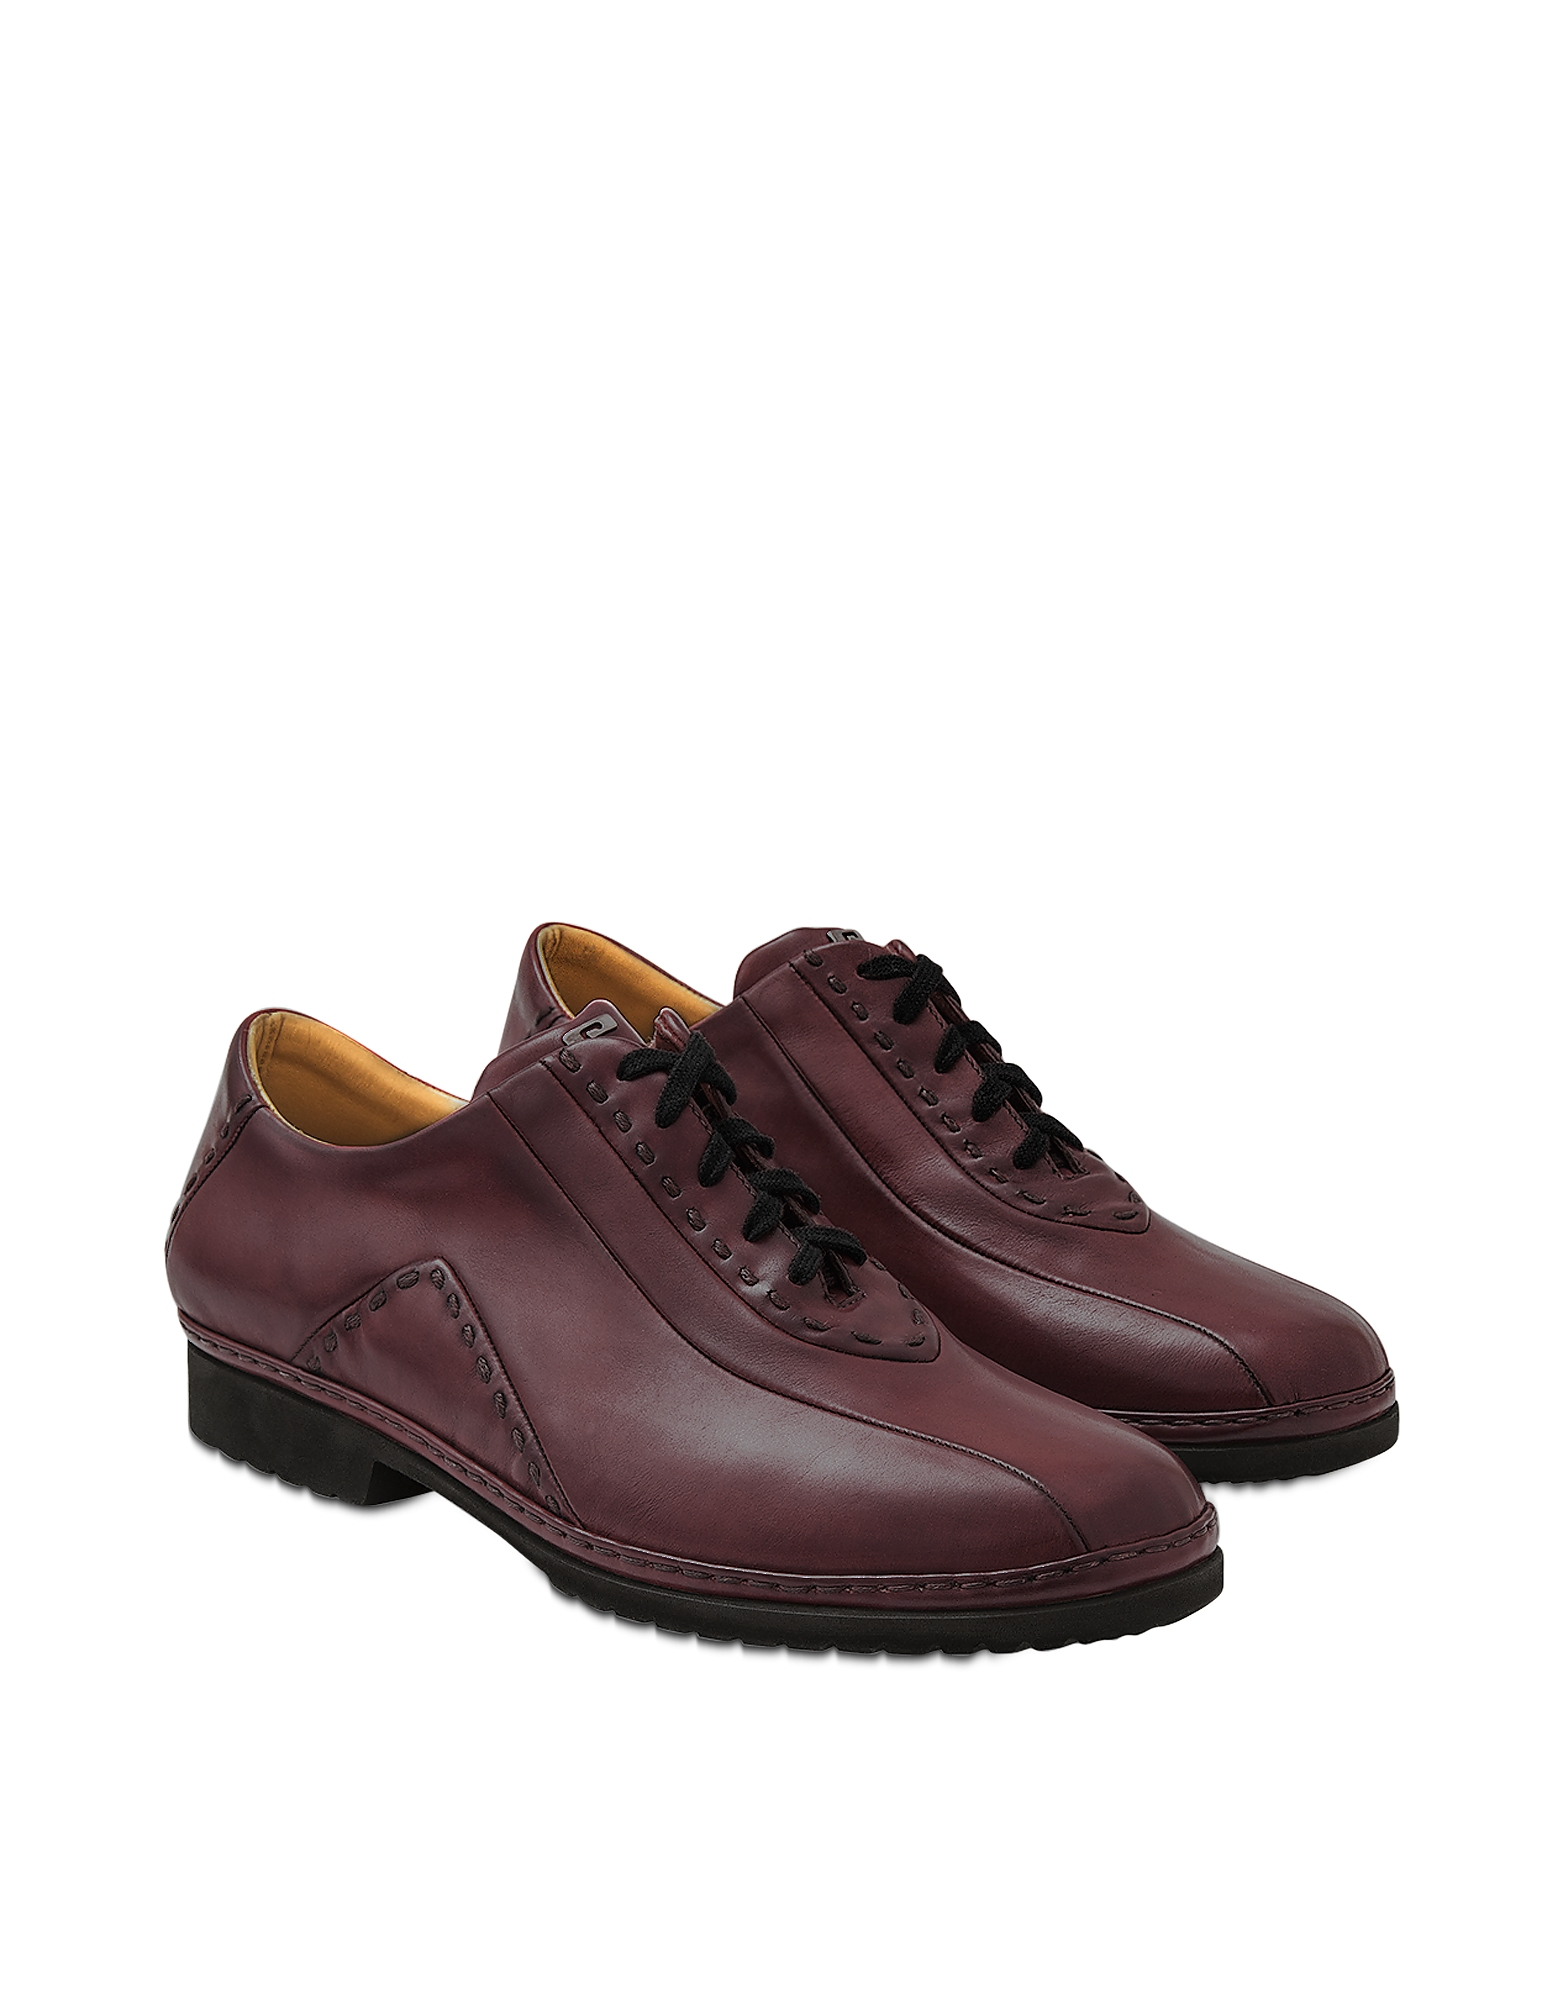 Pakerson Designer Shoes, Burgundy Italian Hand Made Leather Lace-up Shoes